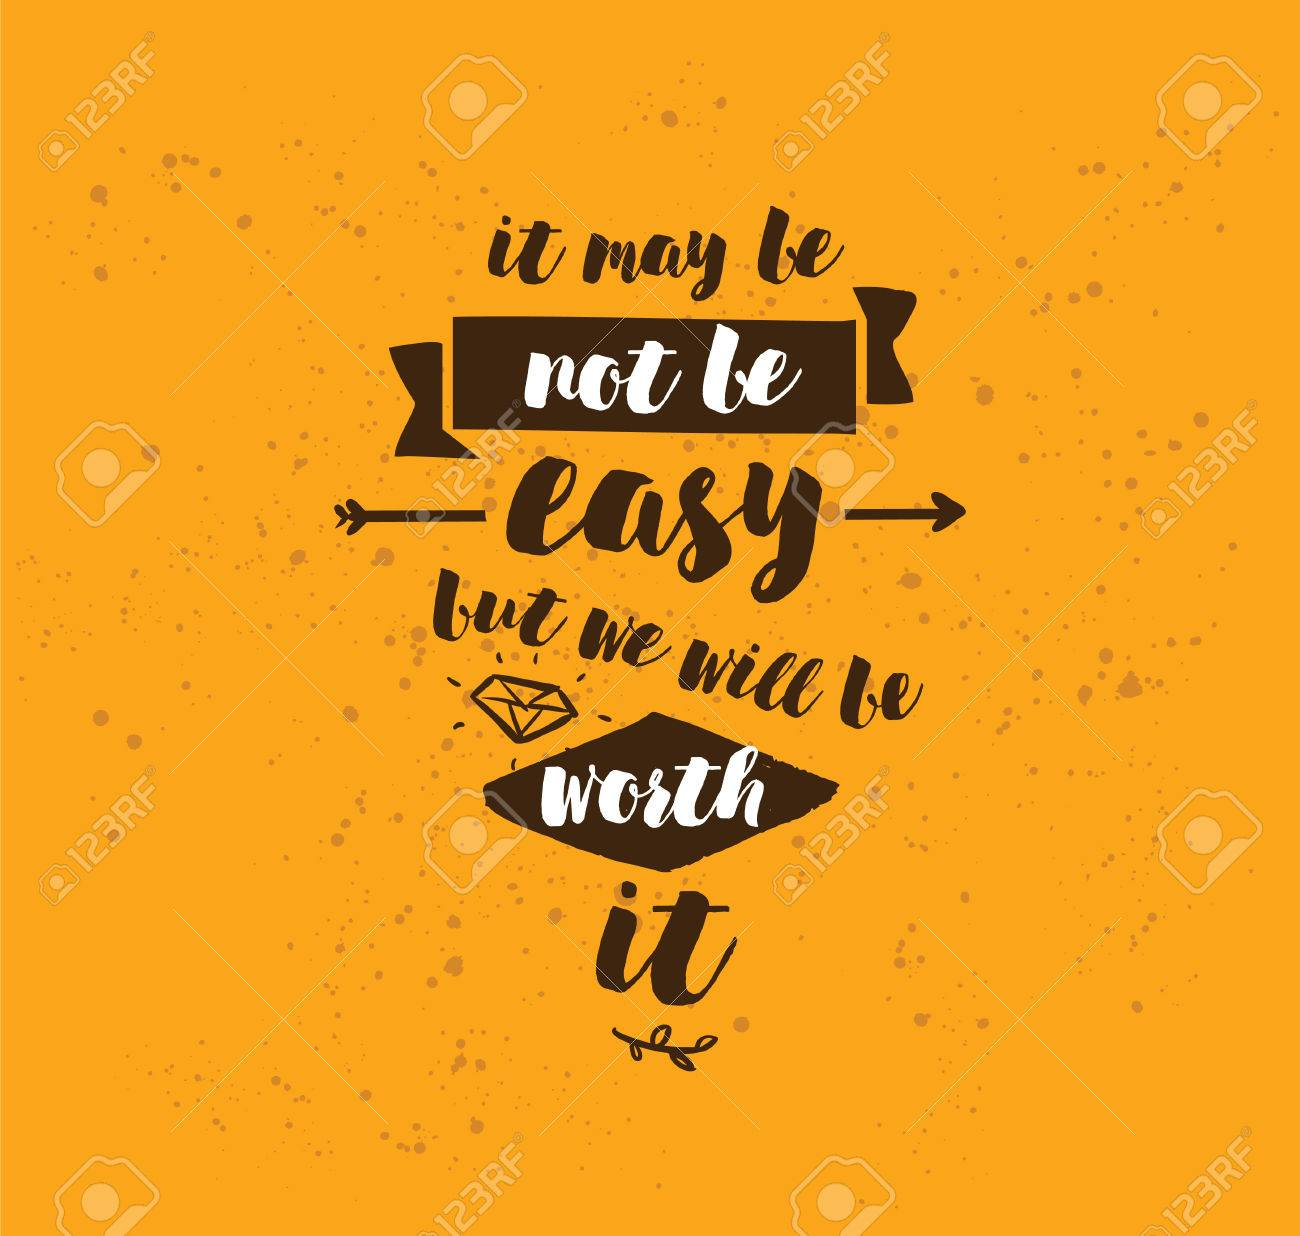 It May Be Not Be Easy But We Will Worth It Inspirational Quote